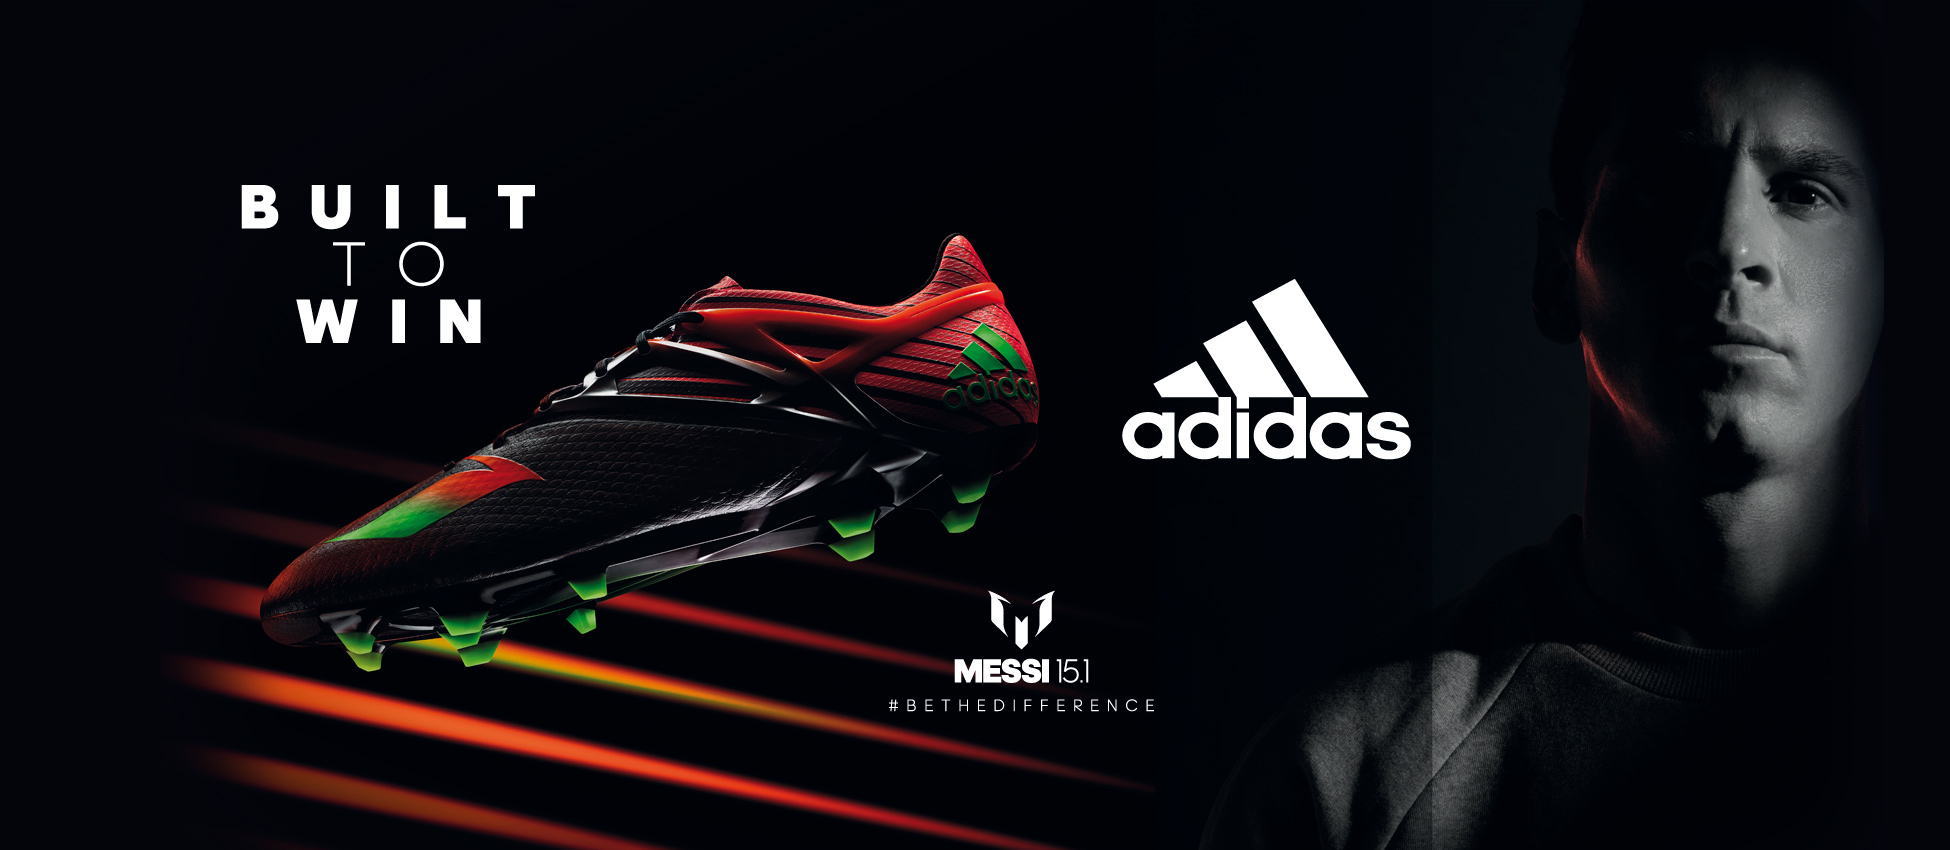 Messi 15: Built to win